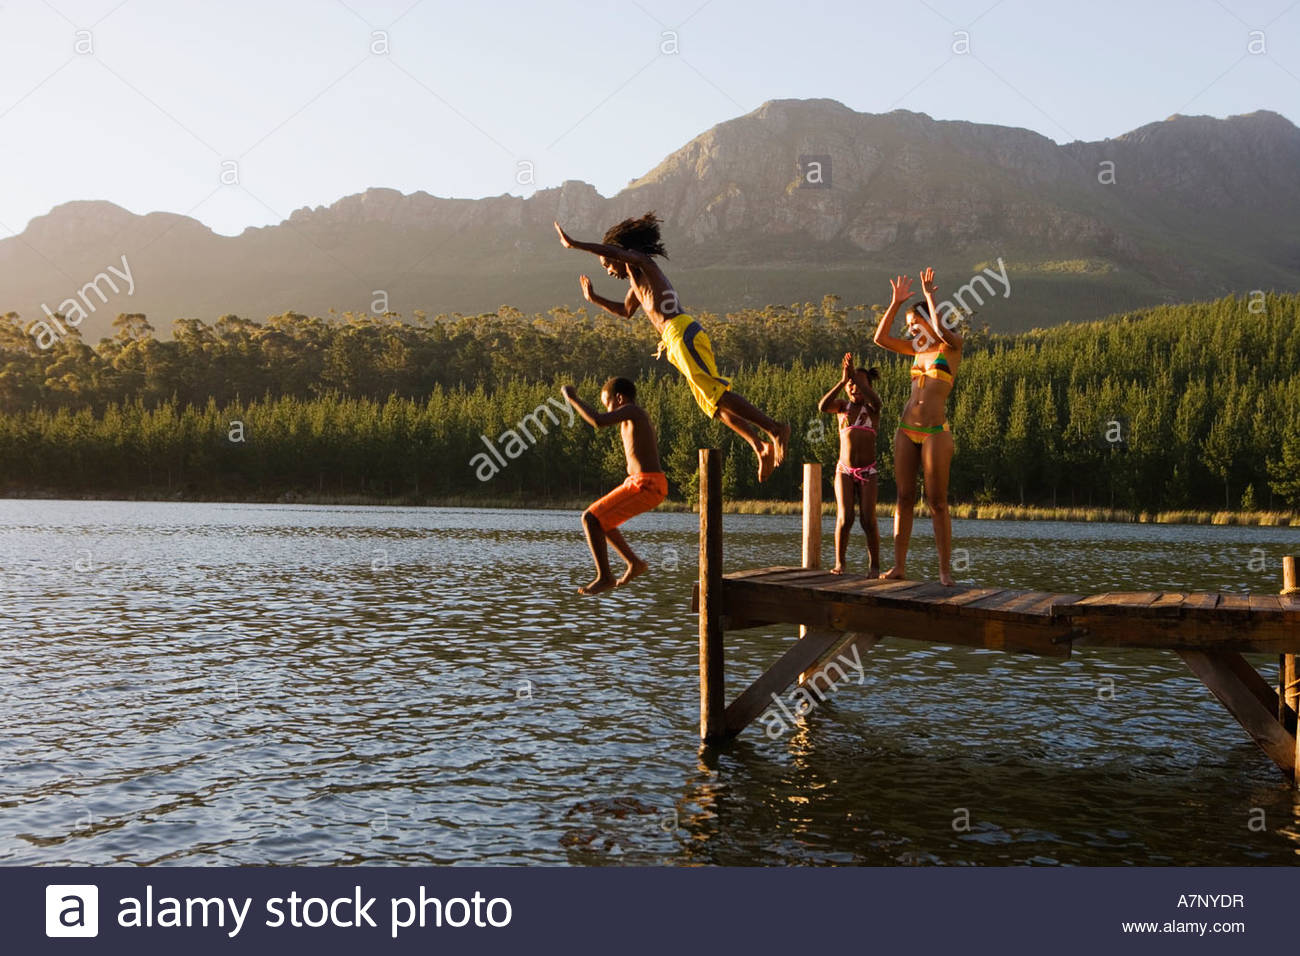 Family in swimwear standing on jetty father and son 8 10 jumping into lake side view - Stock Image